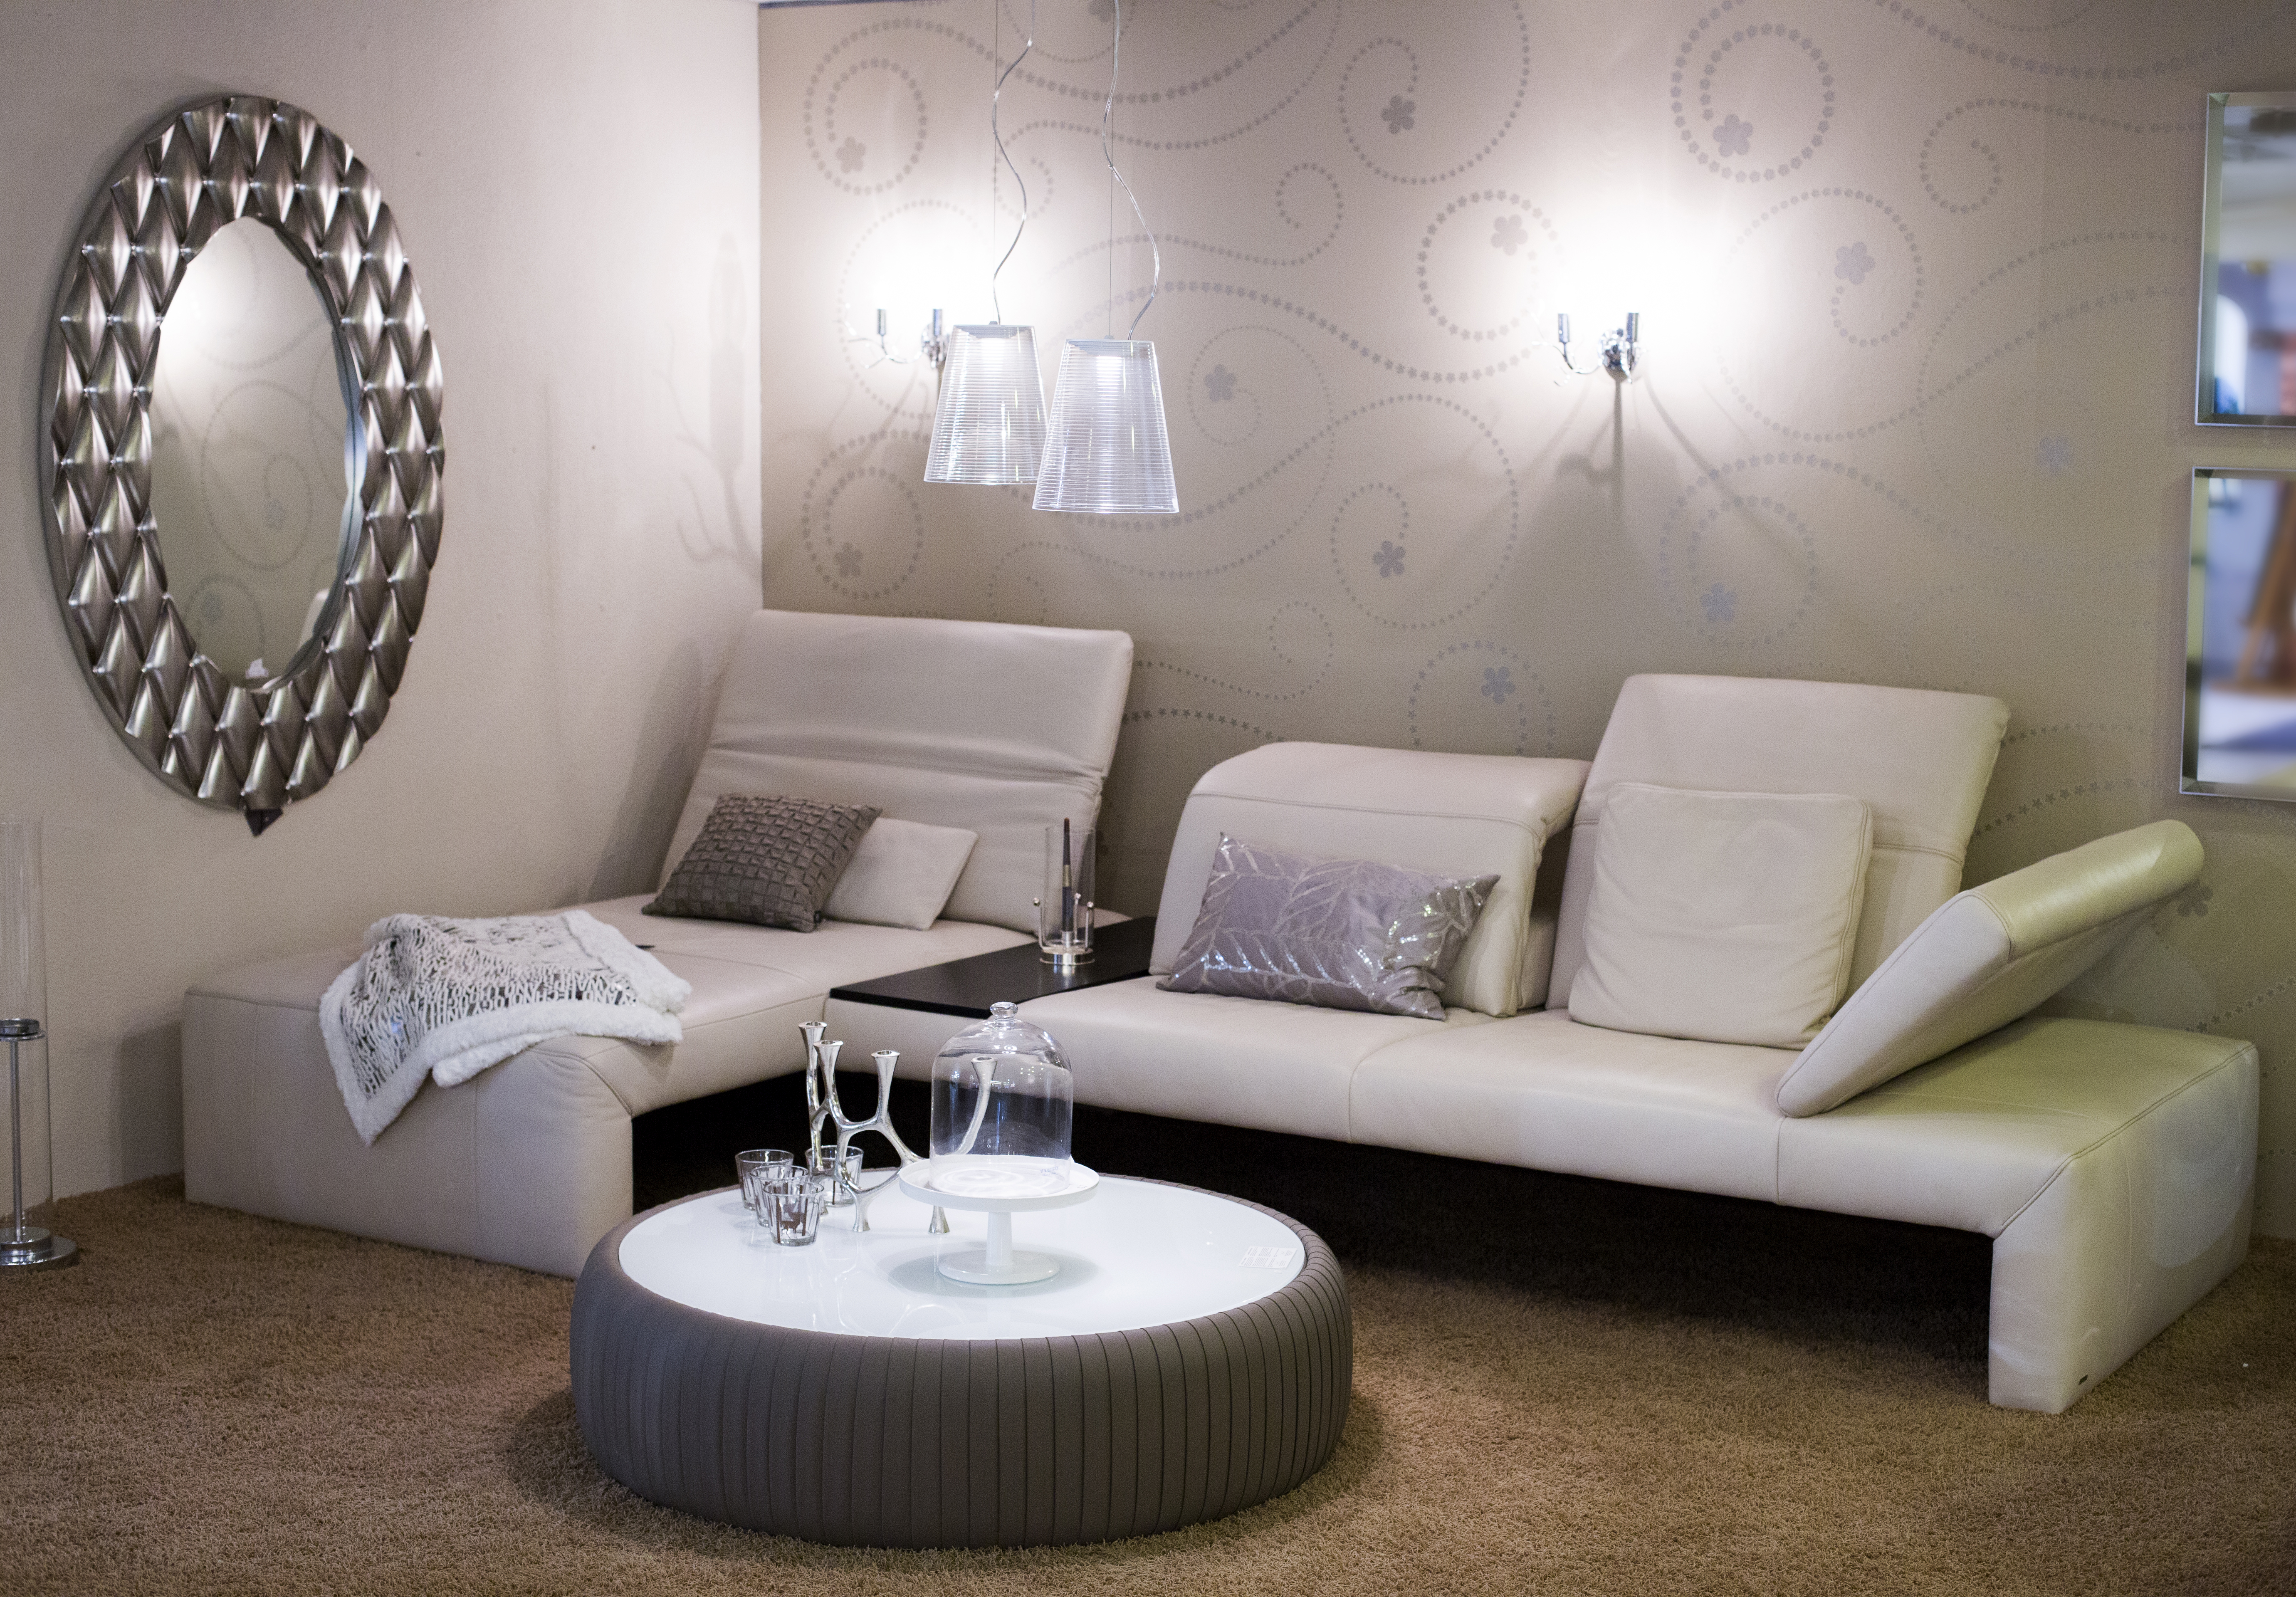 living room with white furniture, mirror and brown carpet